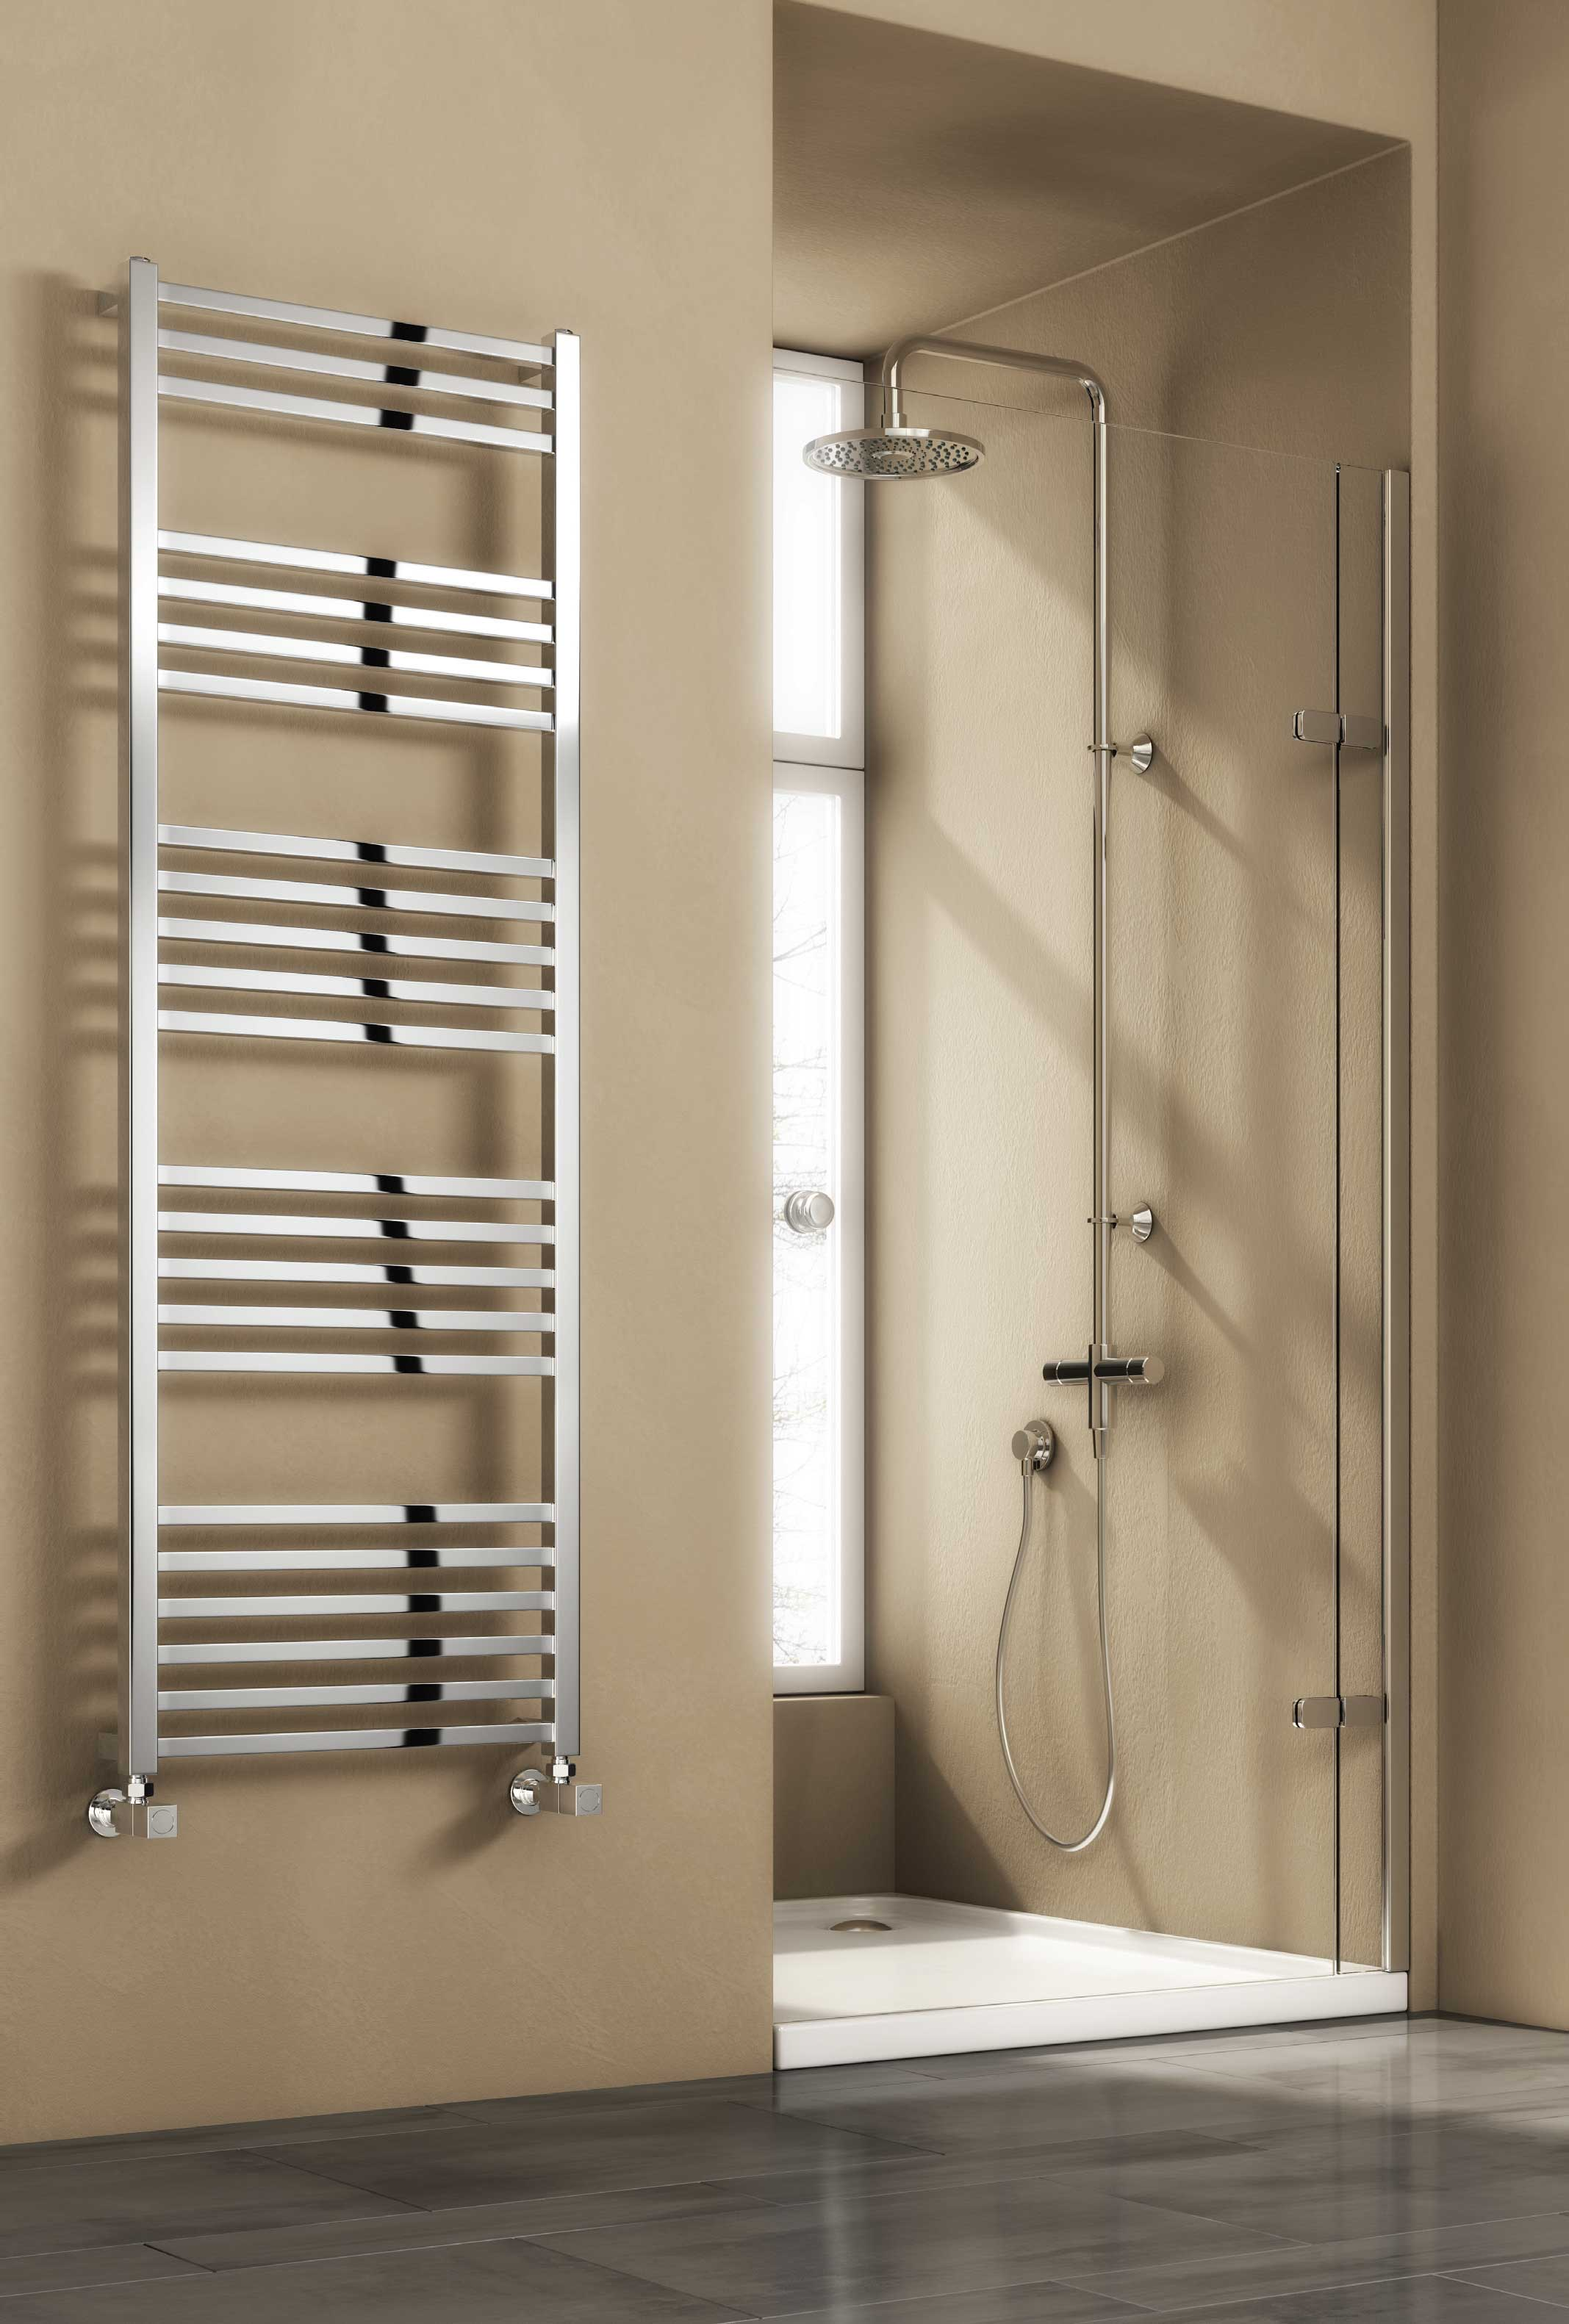 Reina Vasto Steel Modern Vertical Bathroom Towel Rail and Radiator - Chrome